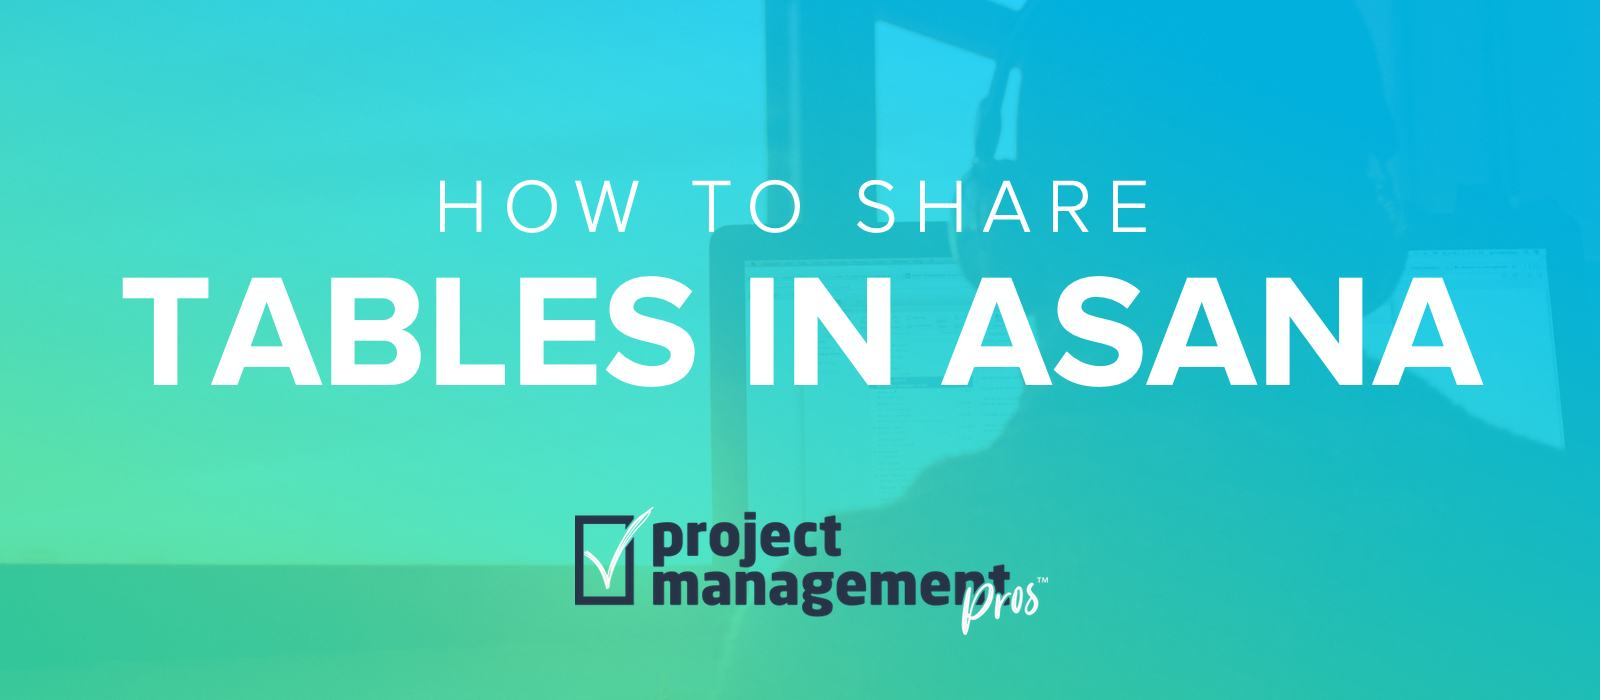 Creating & sharing tables in Asana